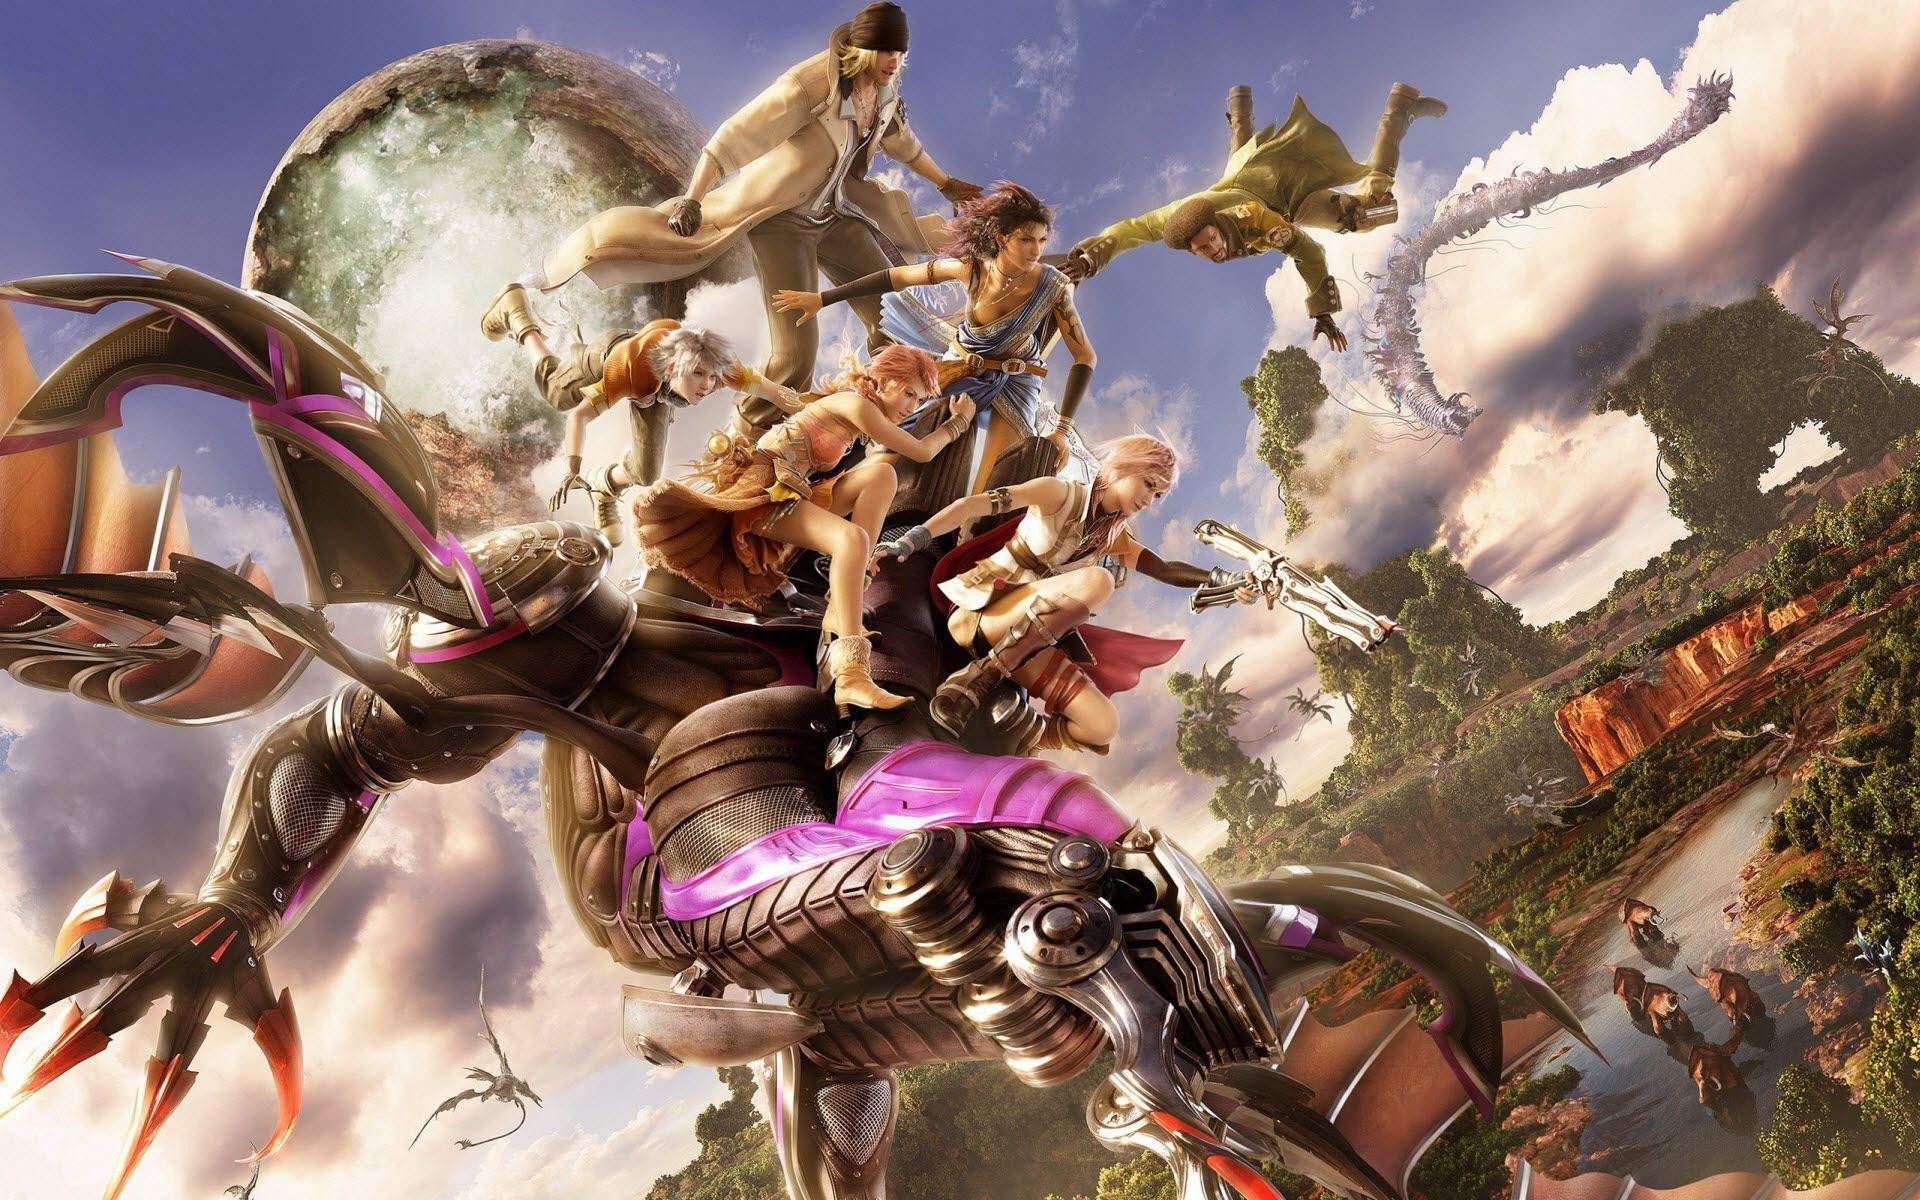 Final Fantasy XIII Game Wallpapers | HD Wallpapers